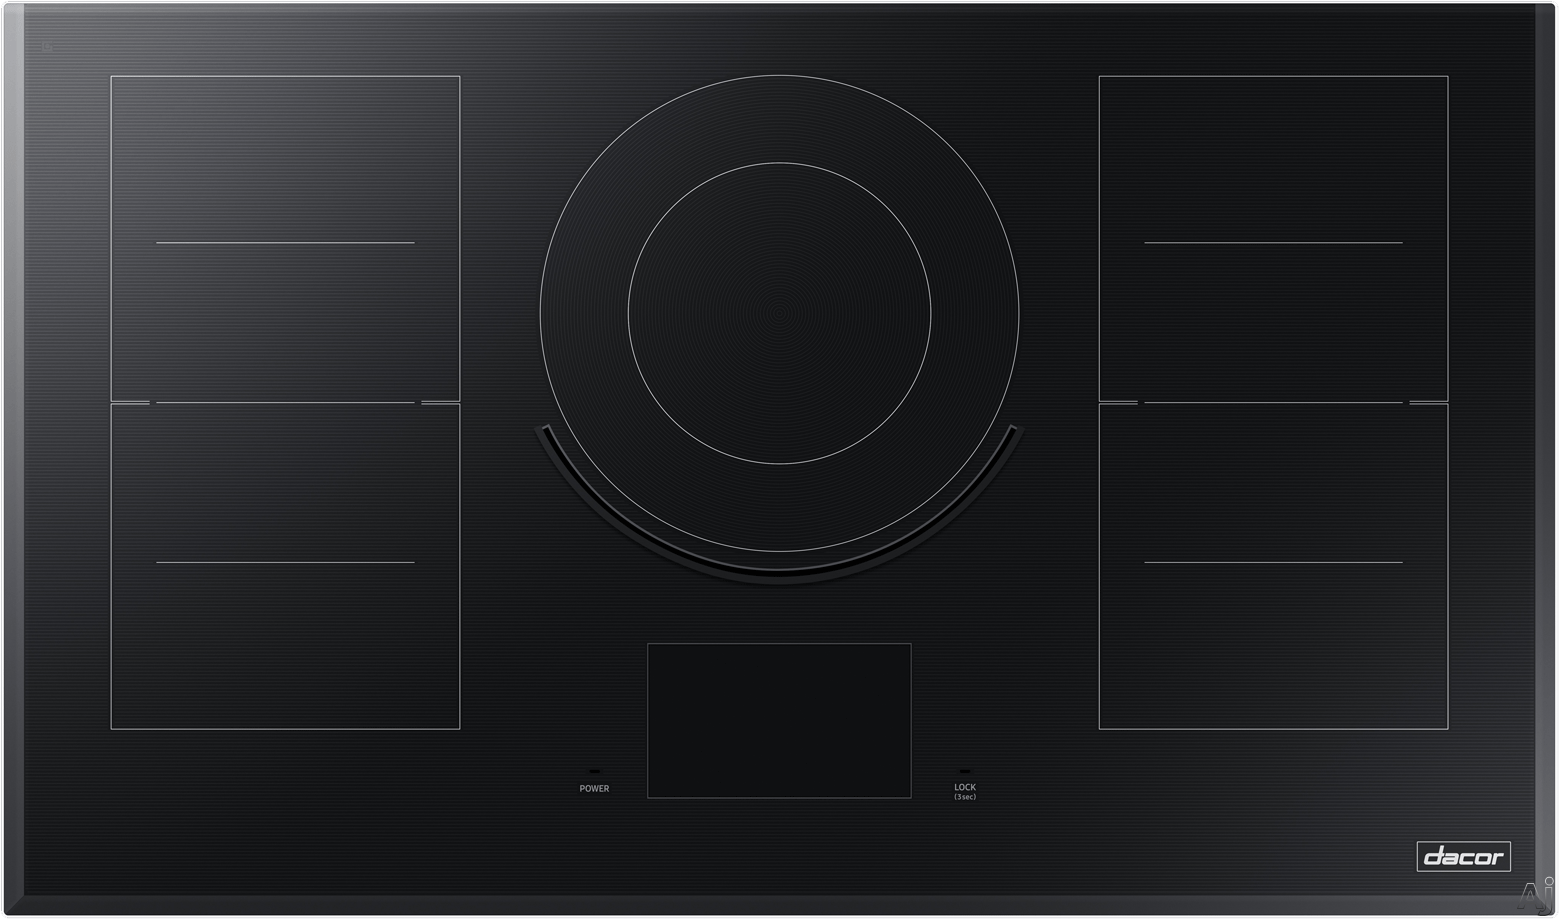 "Dacor Modernist DTI36M977BB 36 Inch Induction Cooktop with iQ Kitchen, Flex Zoneâ""¢, Virtual Flameâ""¢, Hot Surface Indicator, 9 Induction Zones, LCD Control Panel and Child Lock"